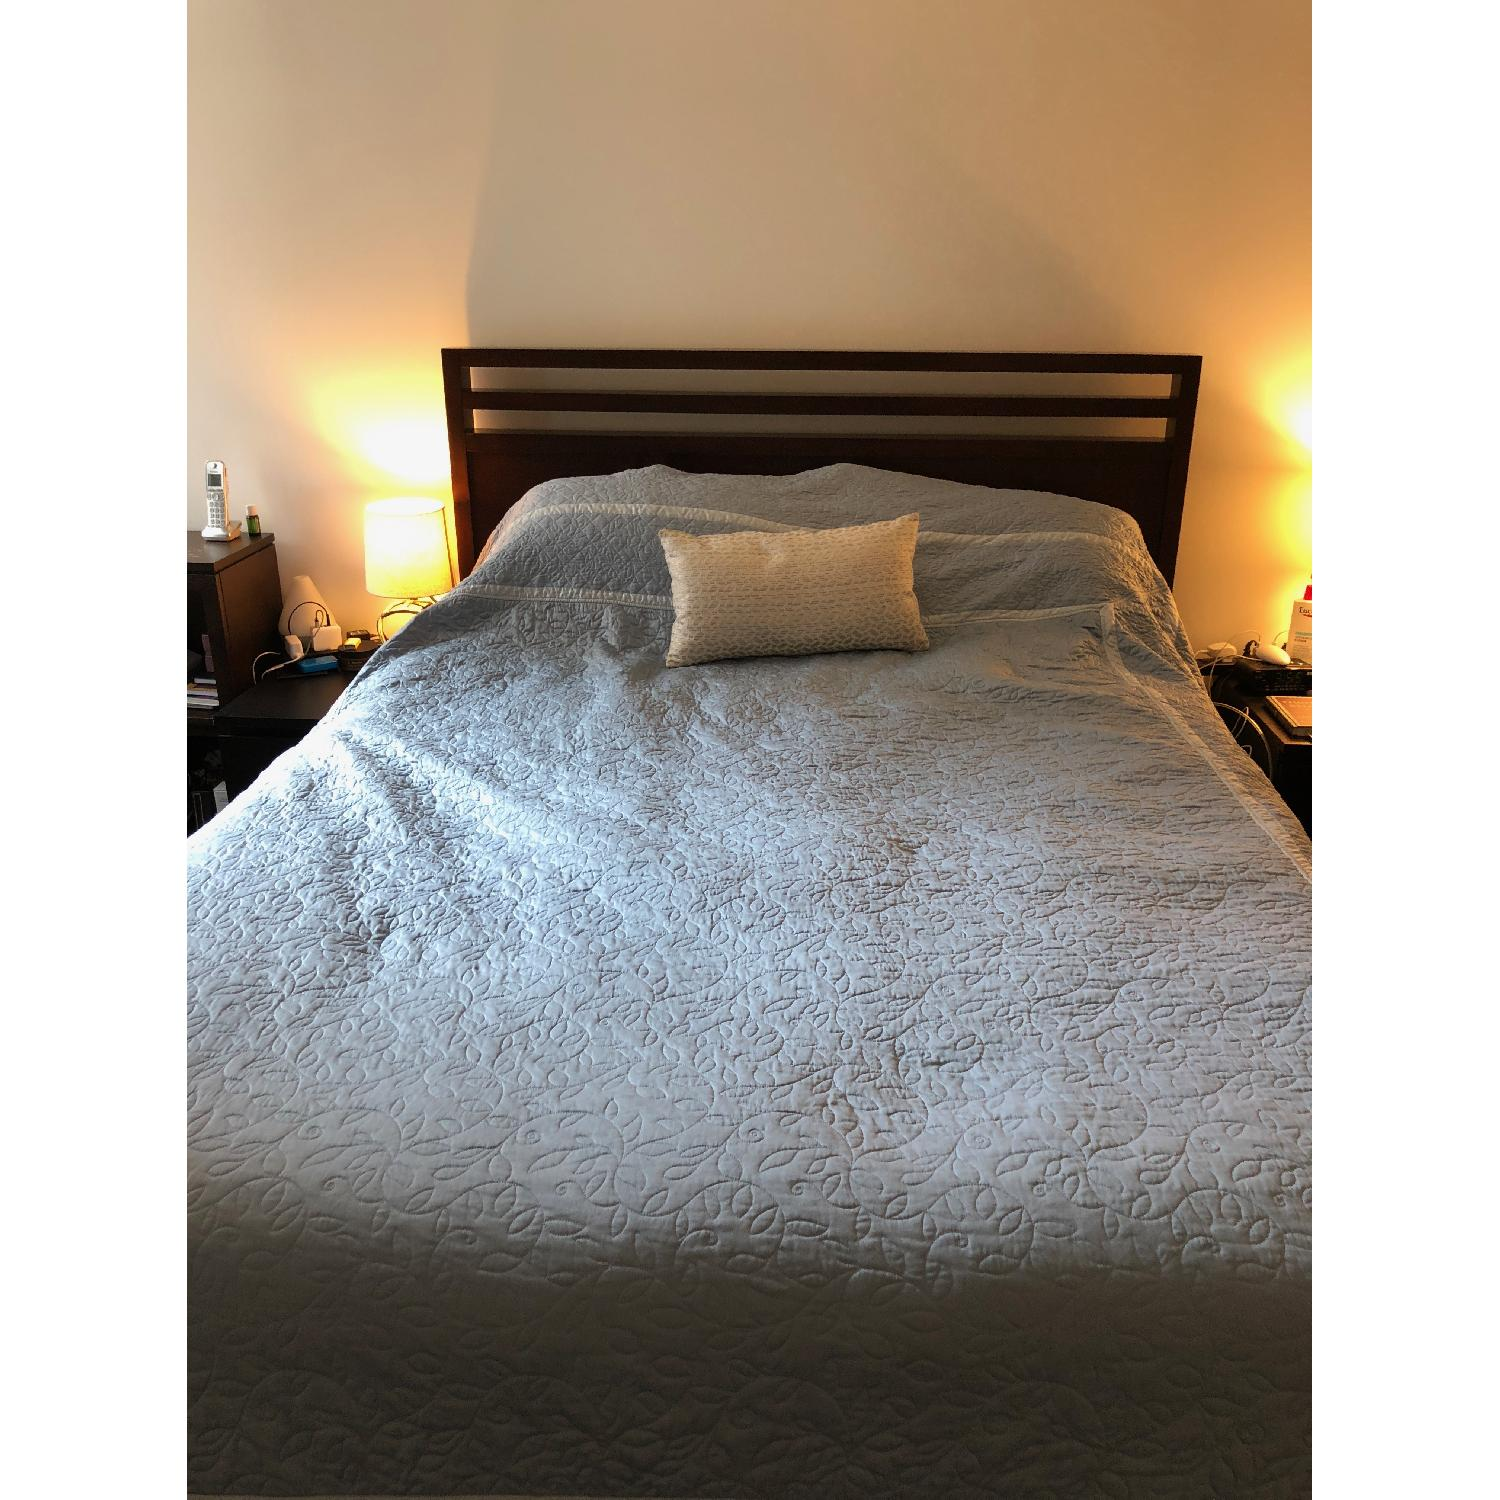 platm with simple for attached basket side tables best info king of bedroom full height frame ikea skipset without small sale storage frames bed macys floating low built chicago in designs platform headboard decor wicker double furniture shelves nightstand size beds nightstands bedrooms